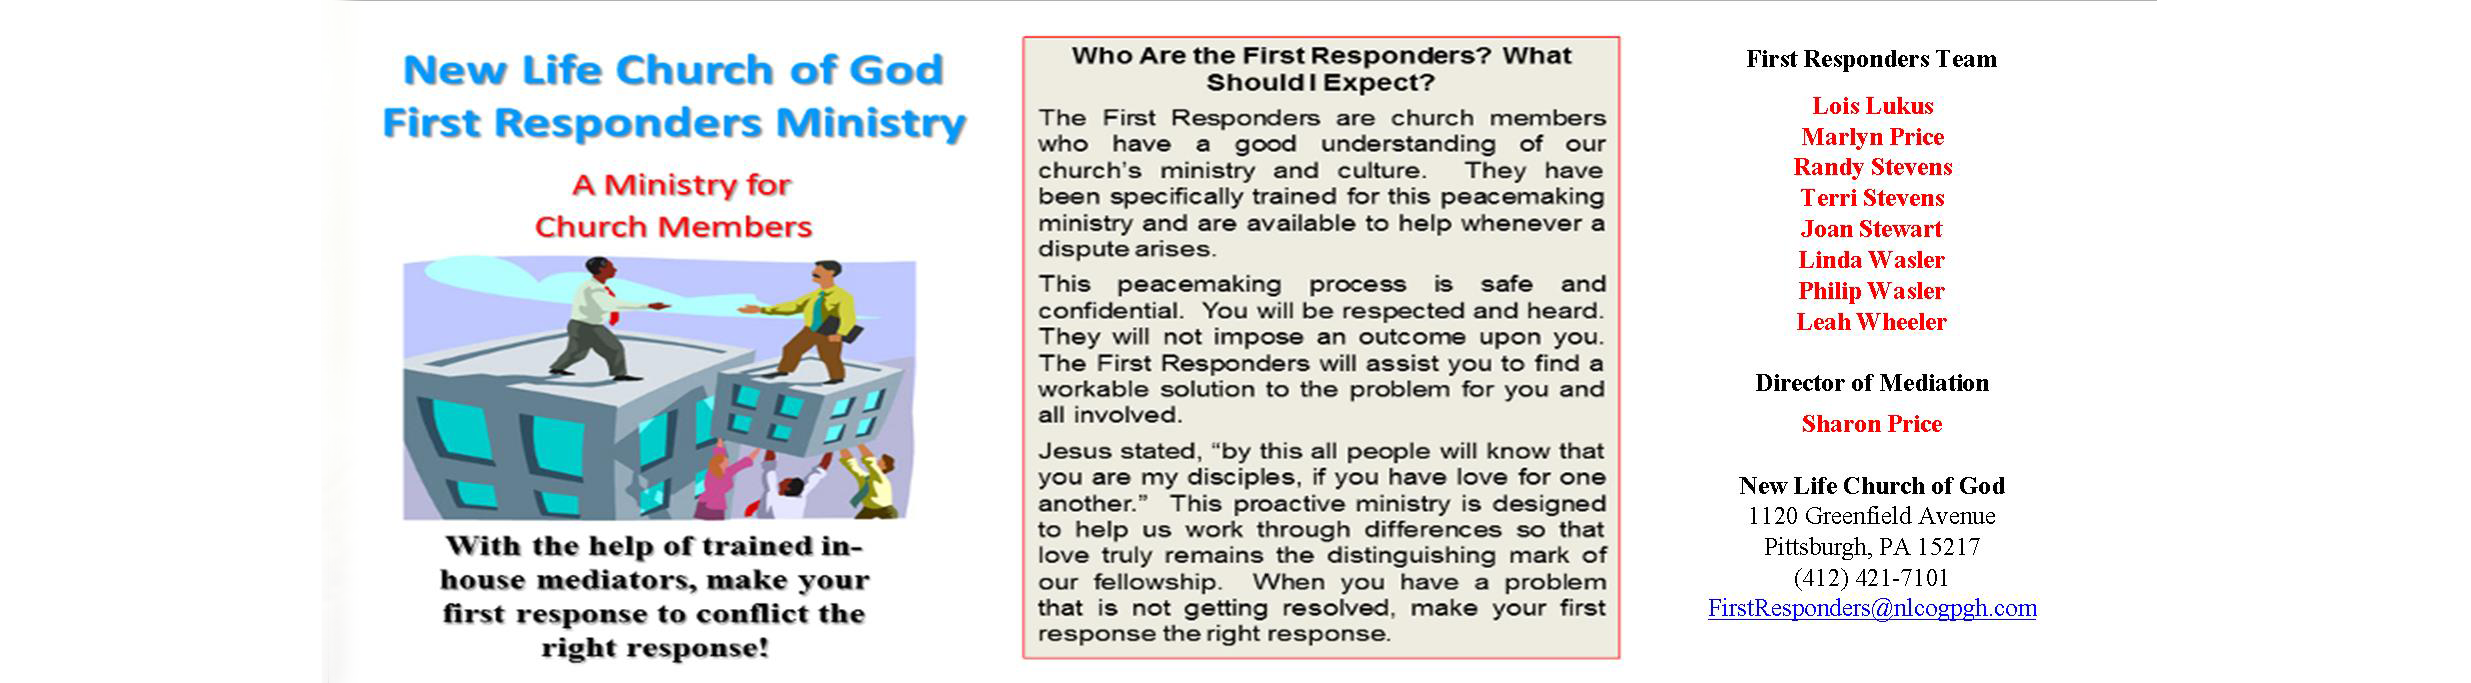 First-Responders-Feb-2015-sider-Version